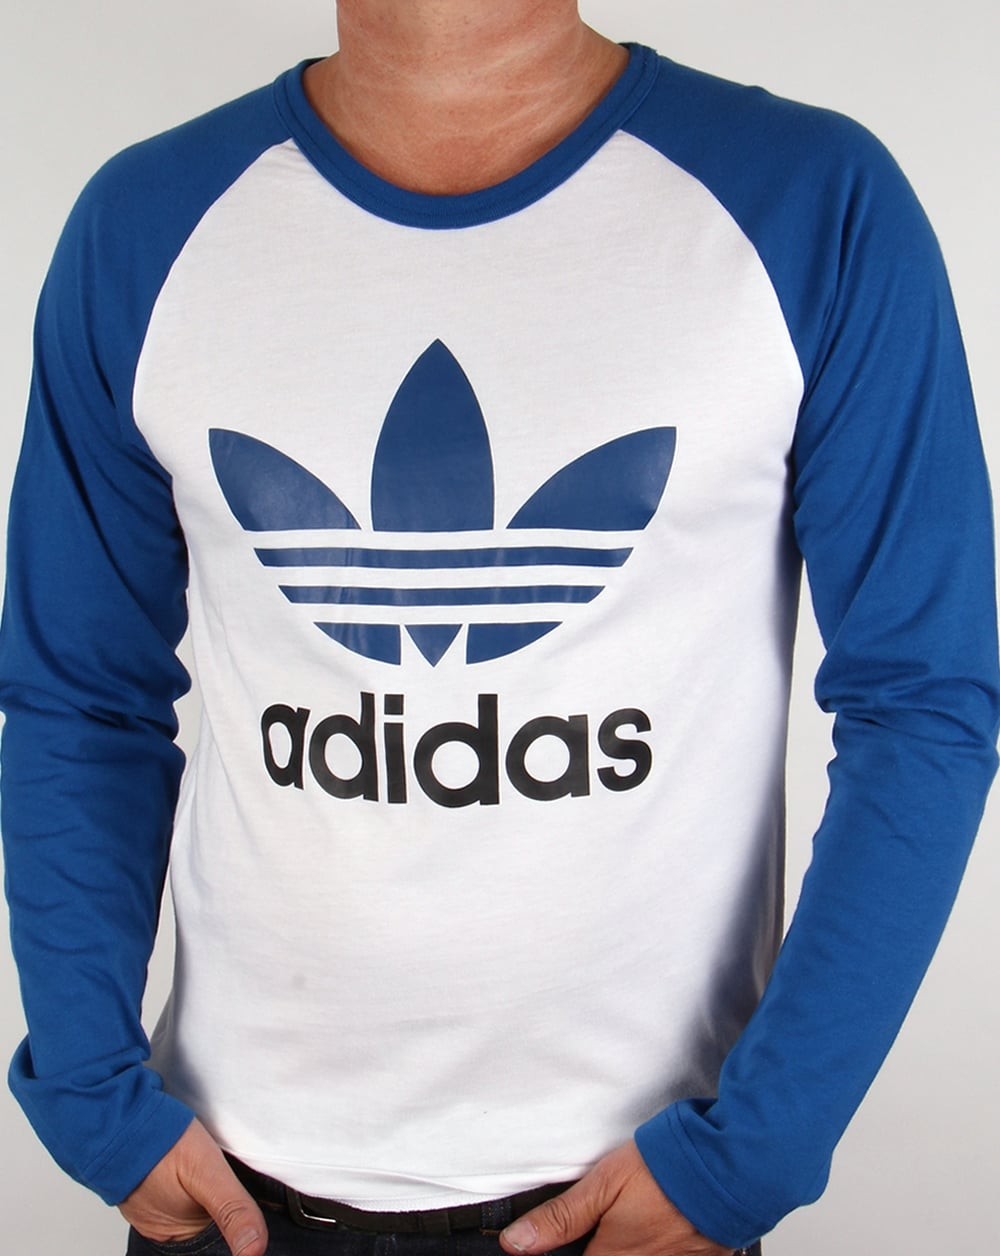 Adidas originals trefoil long sleeve raglan t shirt white for Adidas ringer t shirt